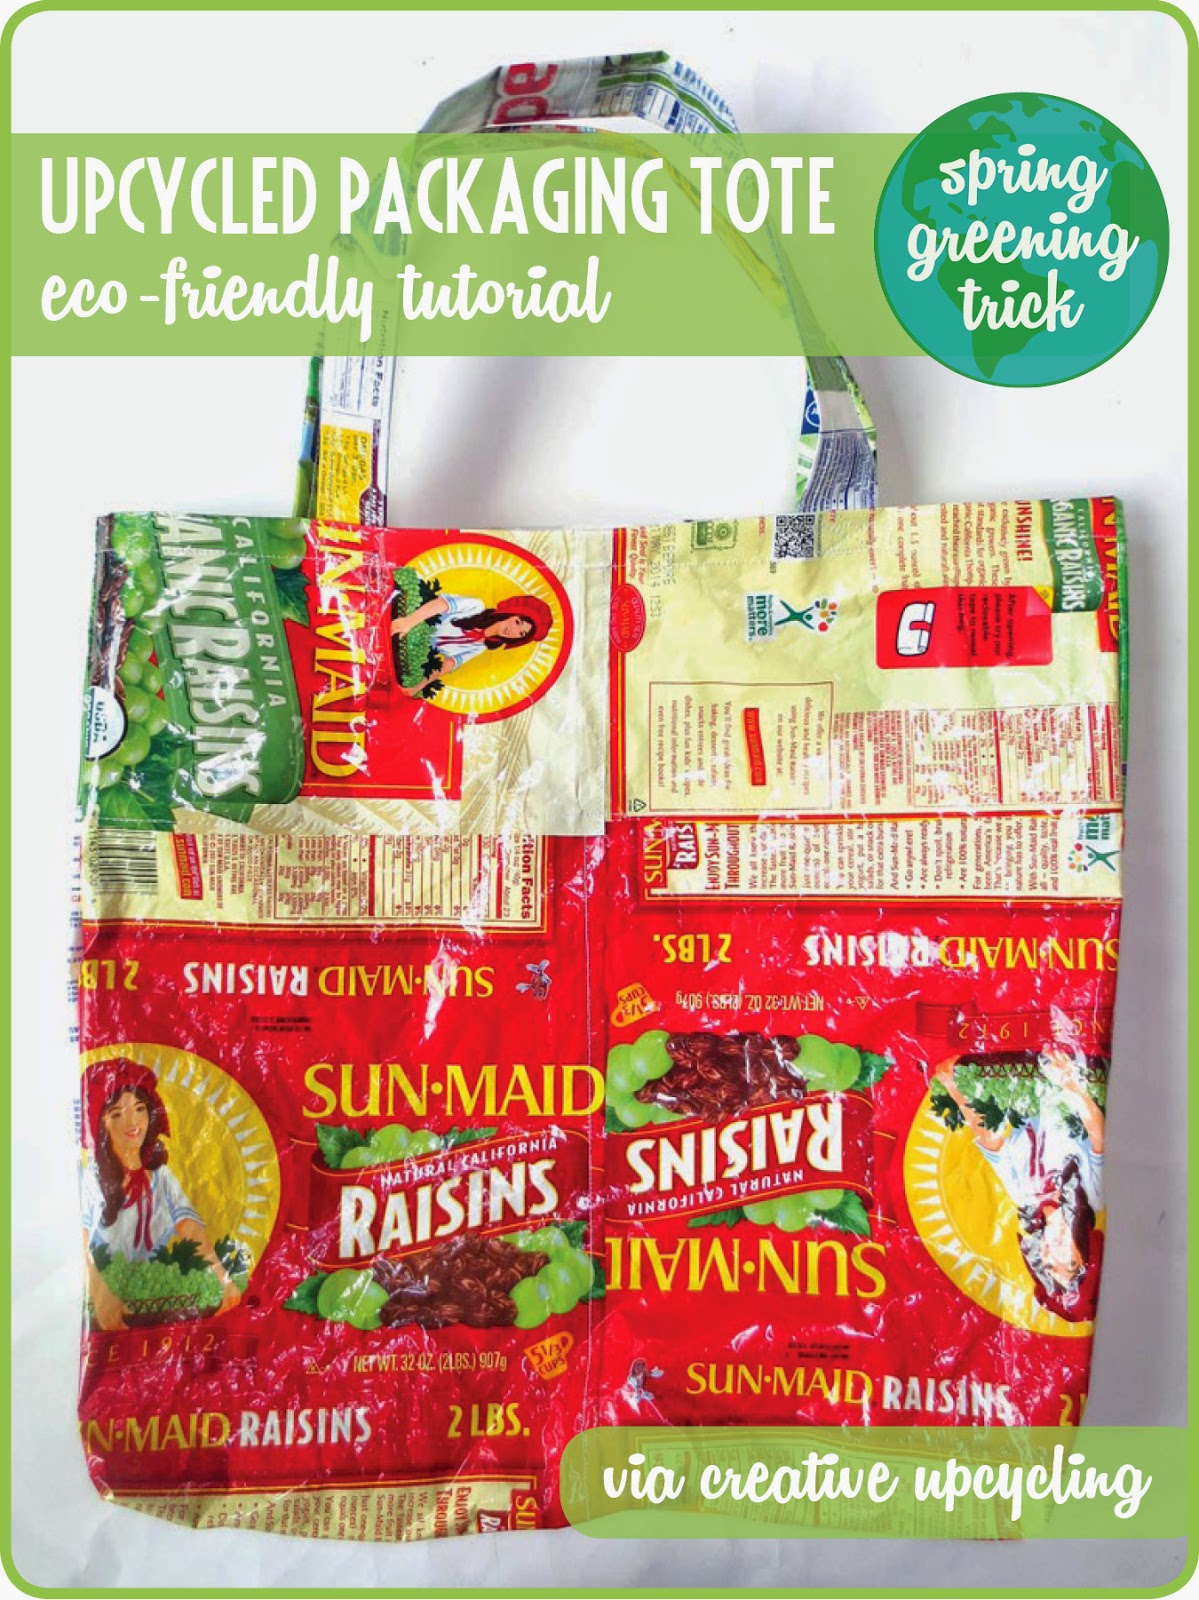 http://www.thrifterindisguise.com/2014/04/diy-tote-bag-from-upcycled-plastic-bags.html